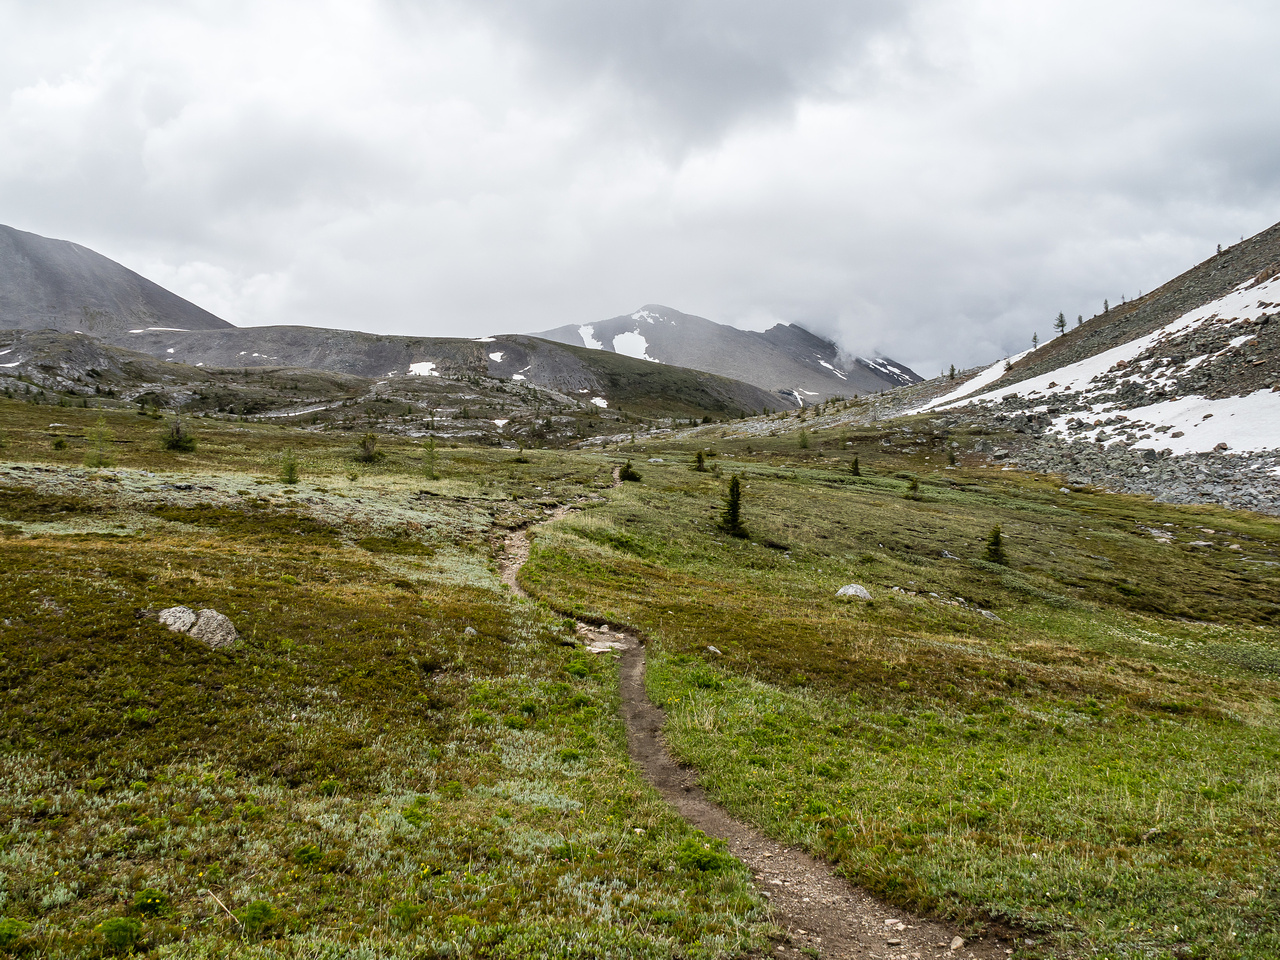 The trail to Citadel Pass.